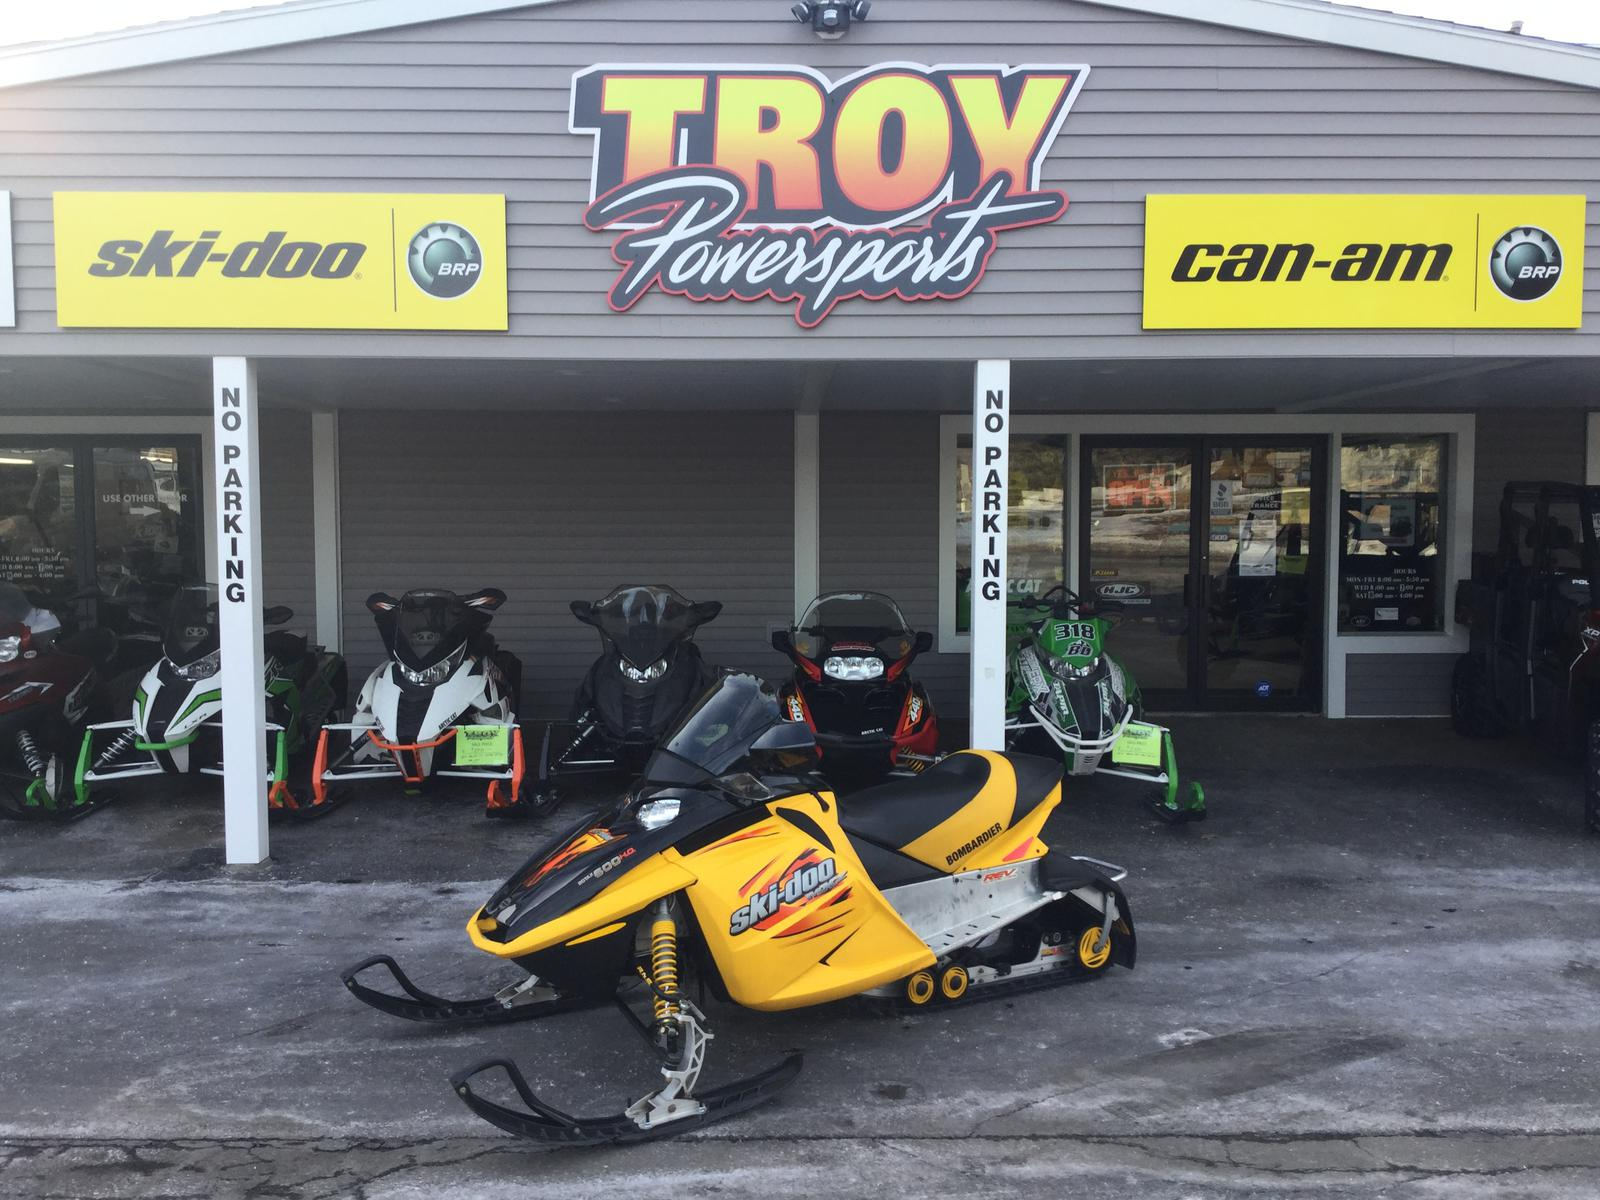 Inventory From Yamaha And Ski Doo Troy Powersports Troy Nh 603